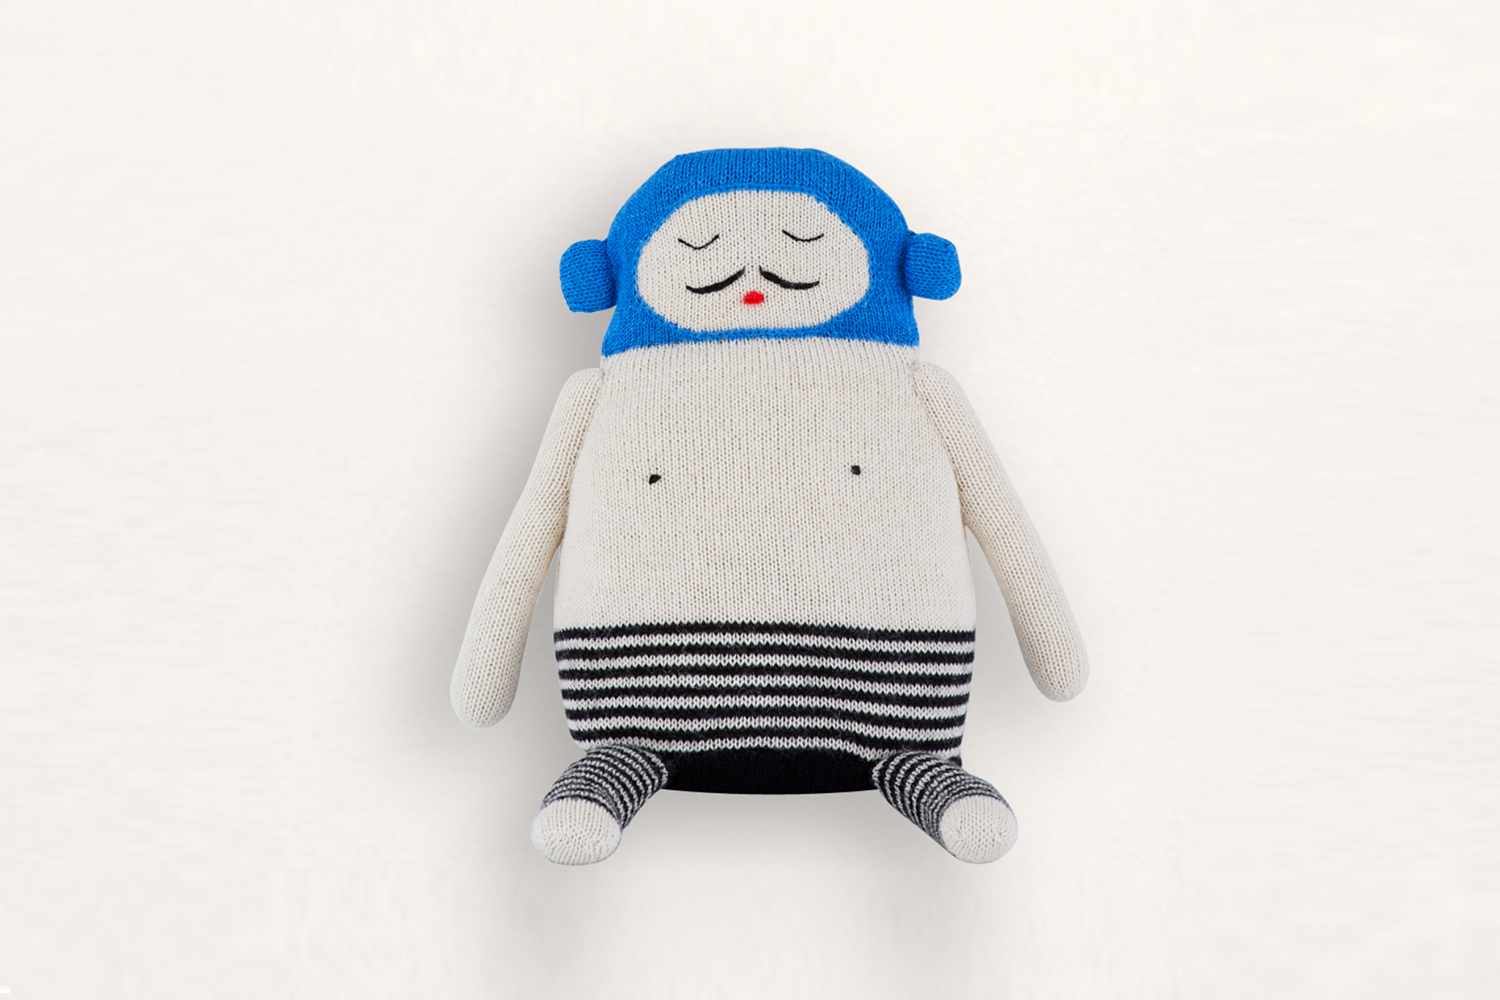 The charming, handmade Balthazar stuffed toy sold by  LUCKYBOYSUNDAY .